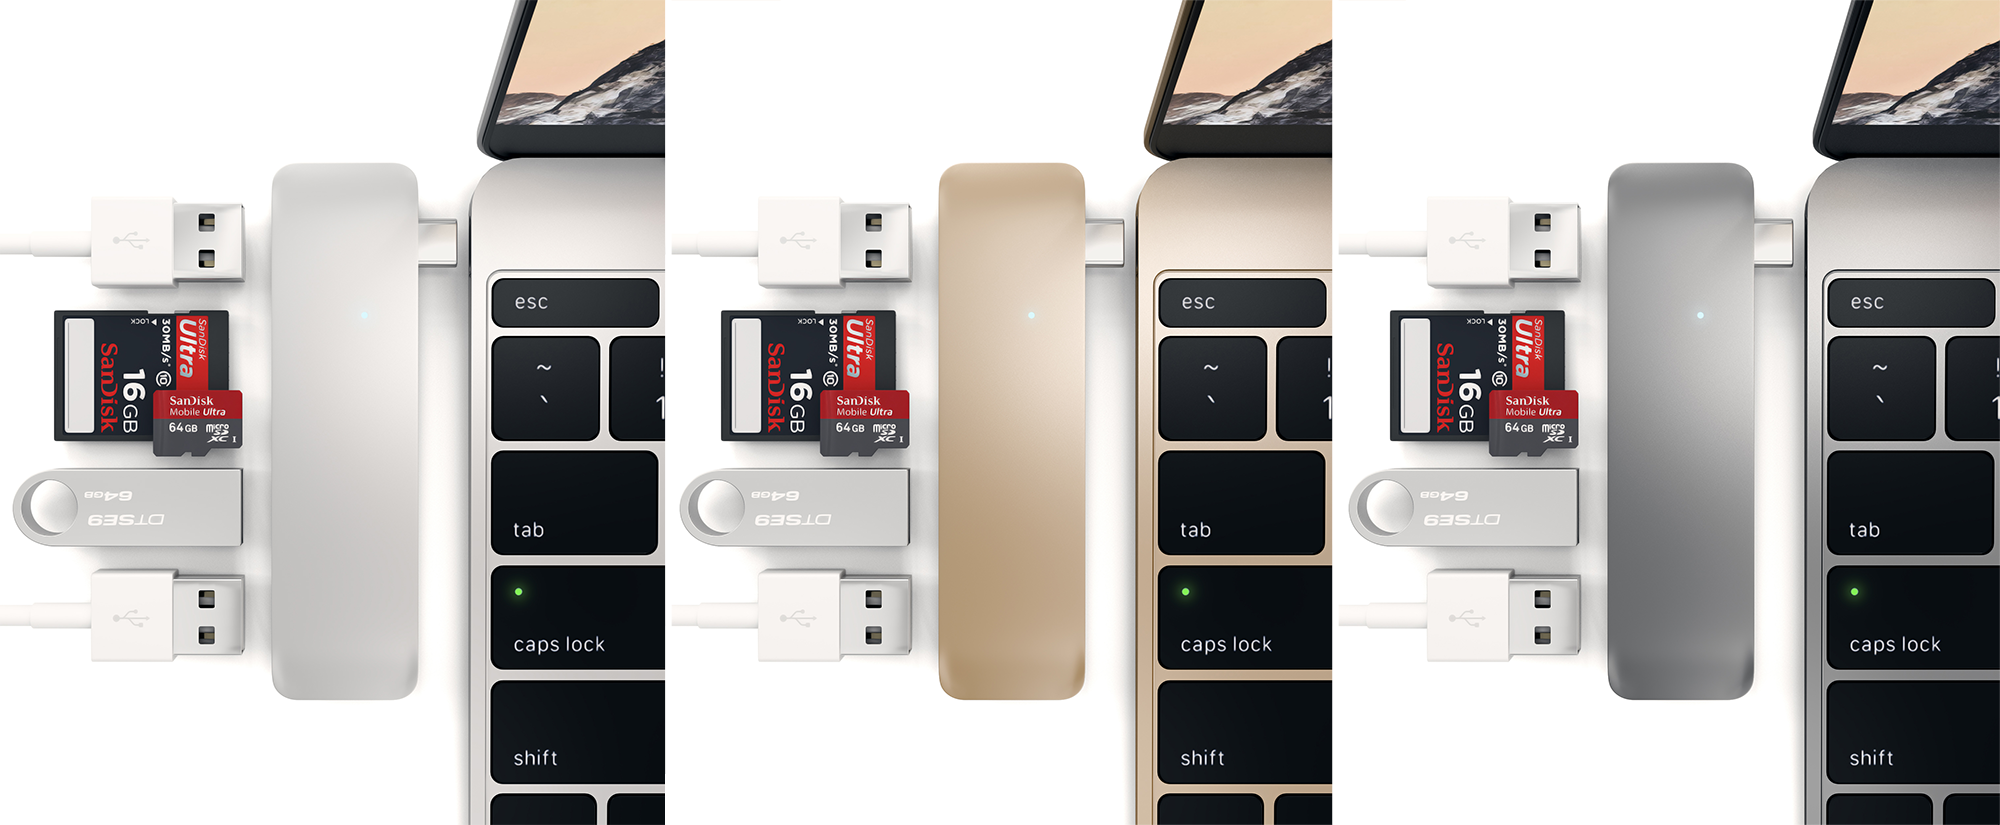 This Thin USB-C Dock Gives Your New MacBook Every Port It's Missing